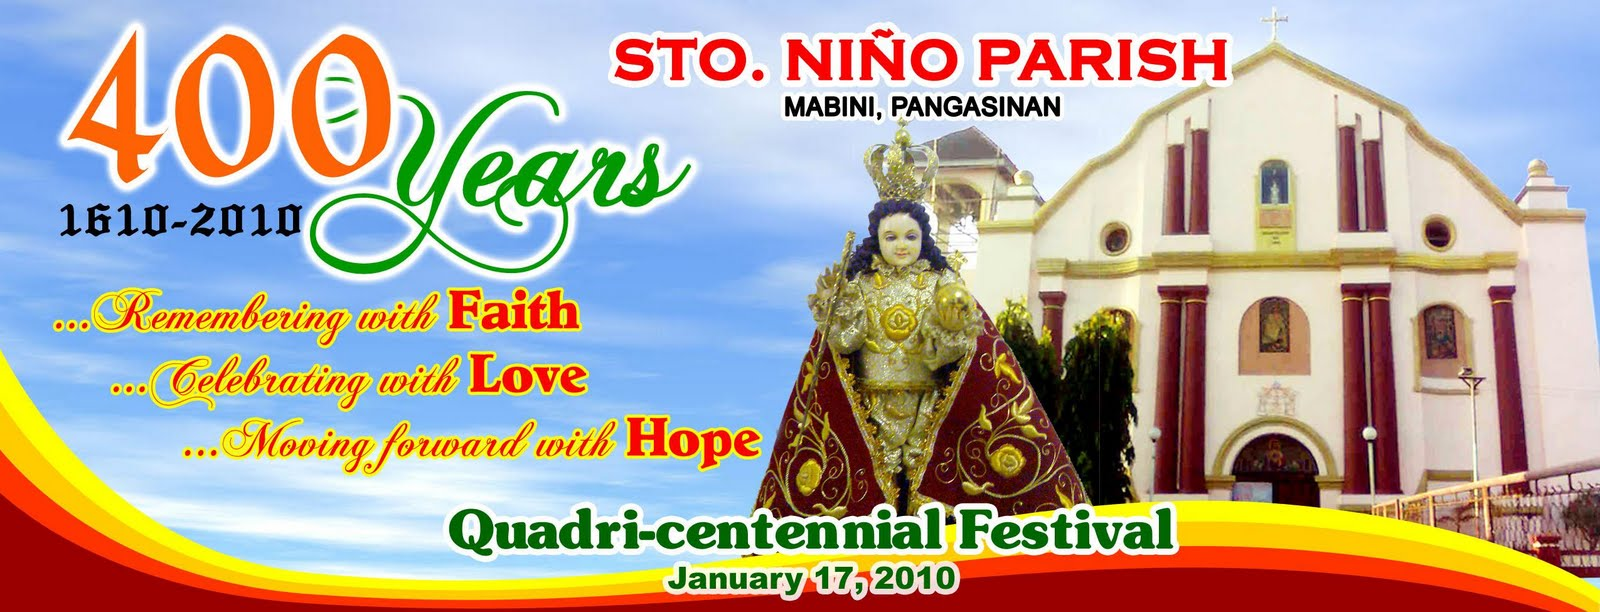 St. Nino Parish